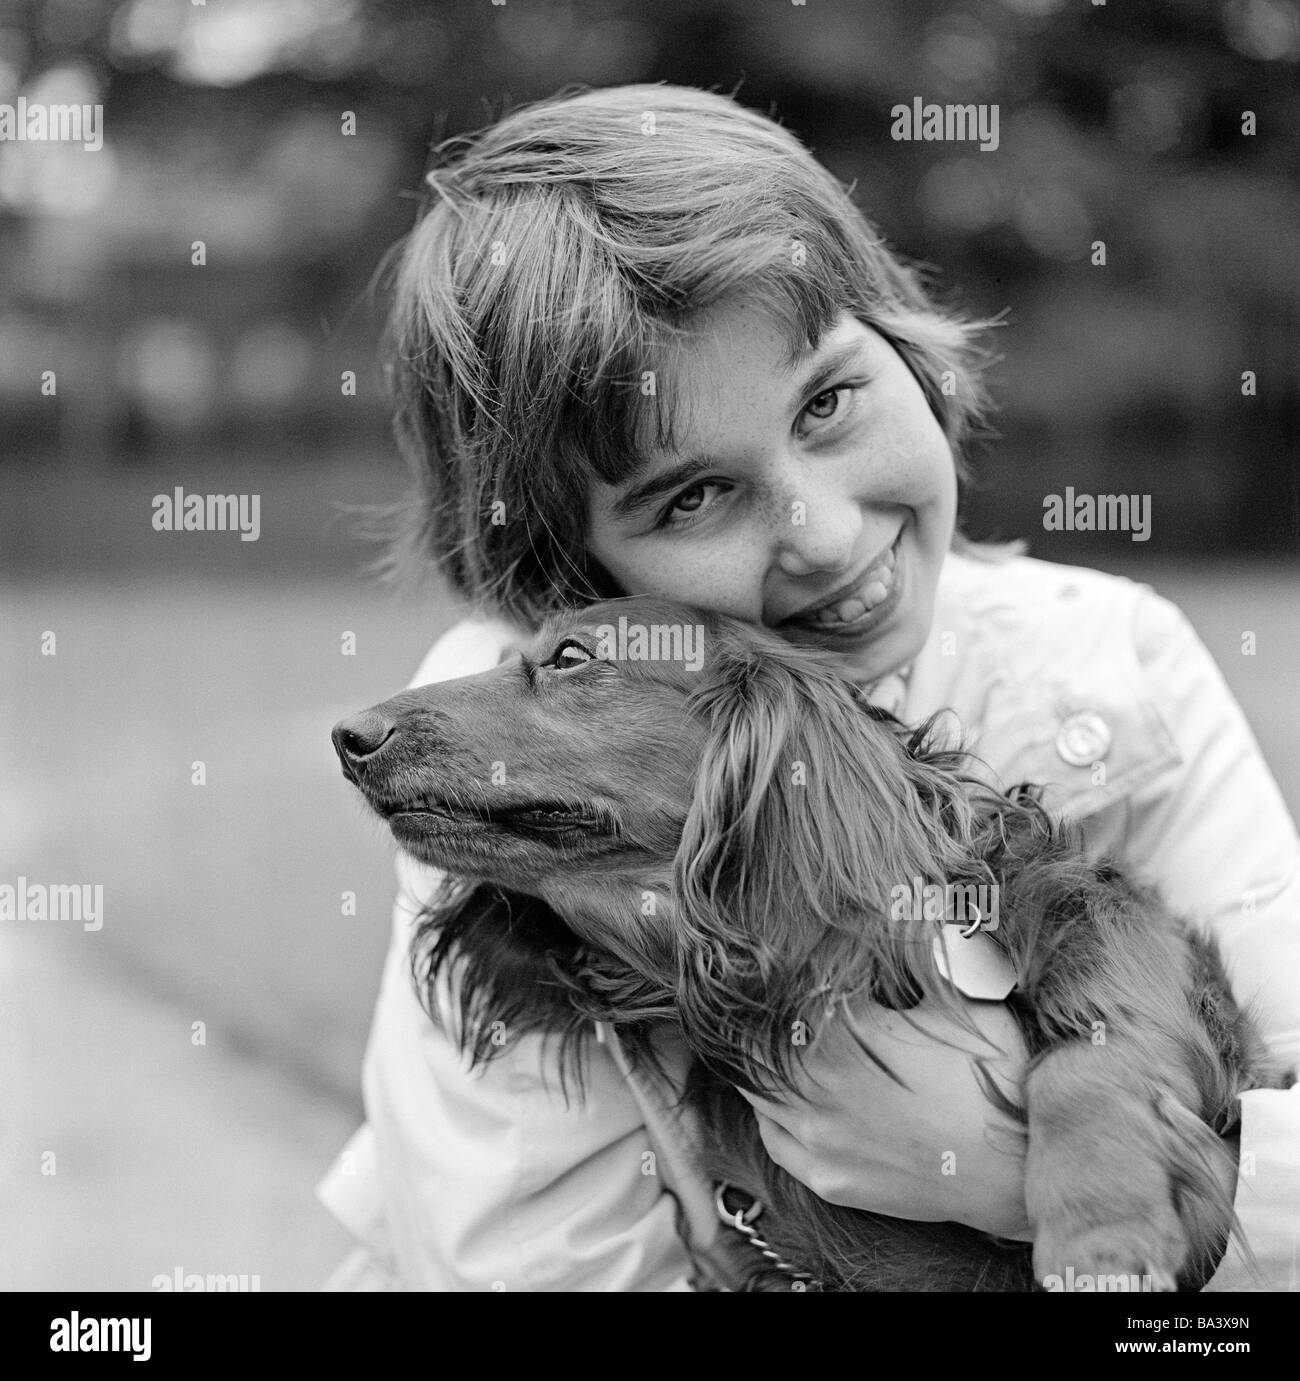 Seventies, black and white photo, human and animal, young girl cuddles with a dachshund, aged 10 to 14 years, domestic - Stock Image